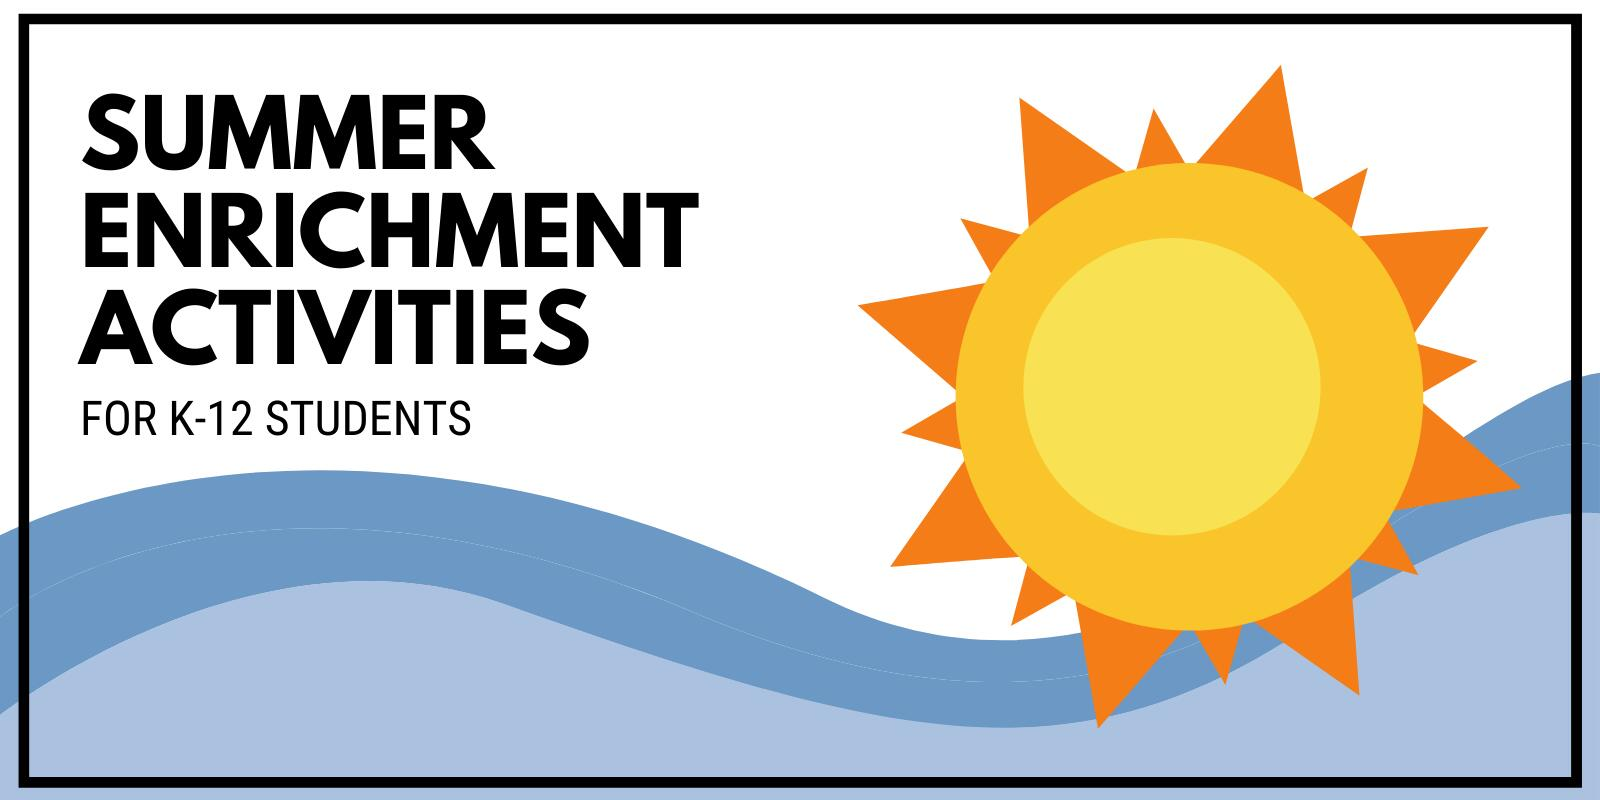 Click to see Summer Enrichment Activities for K-12 Students